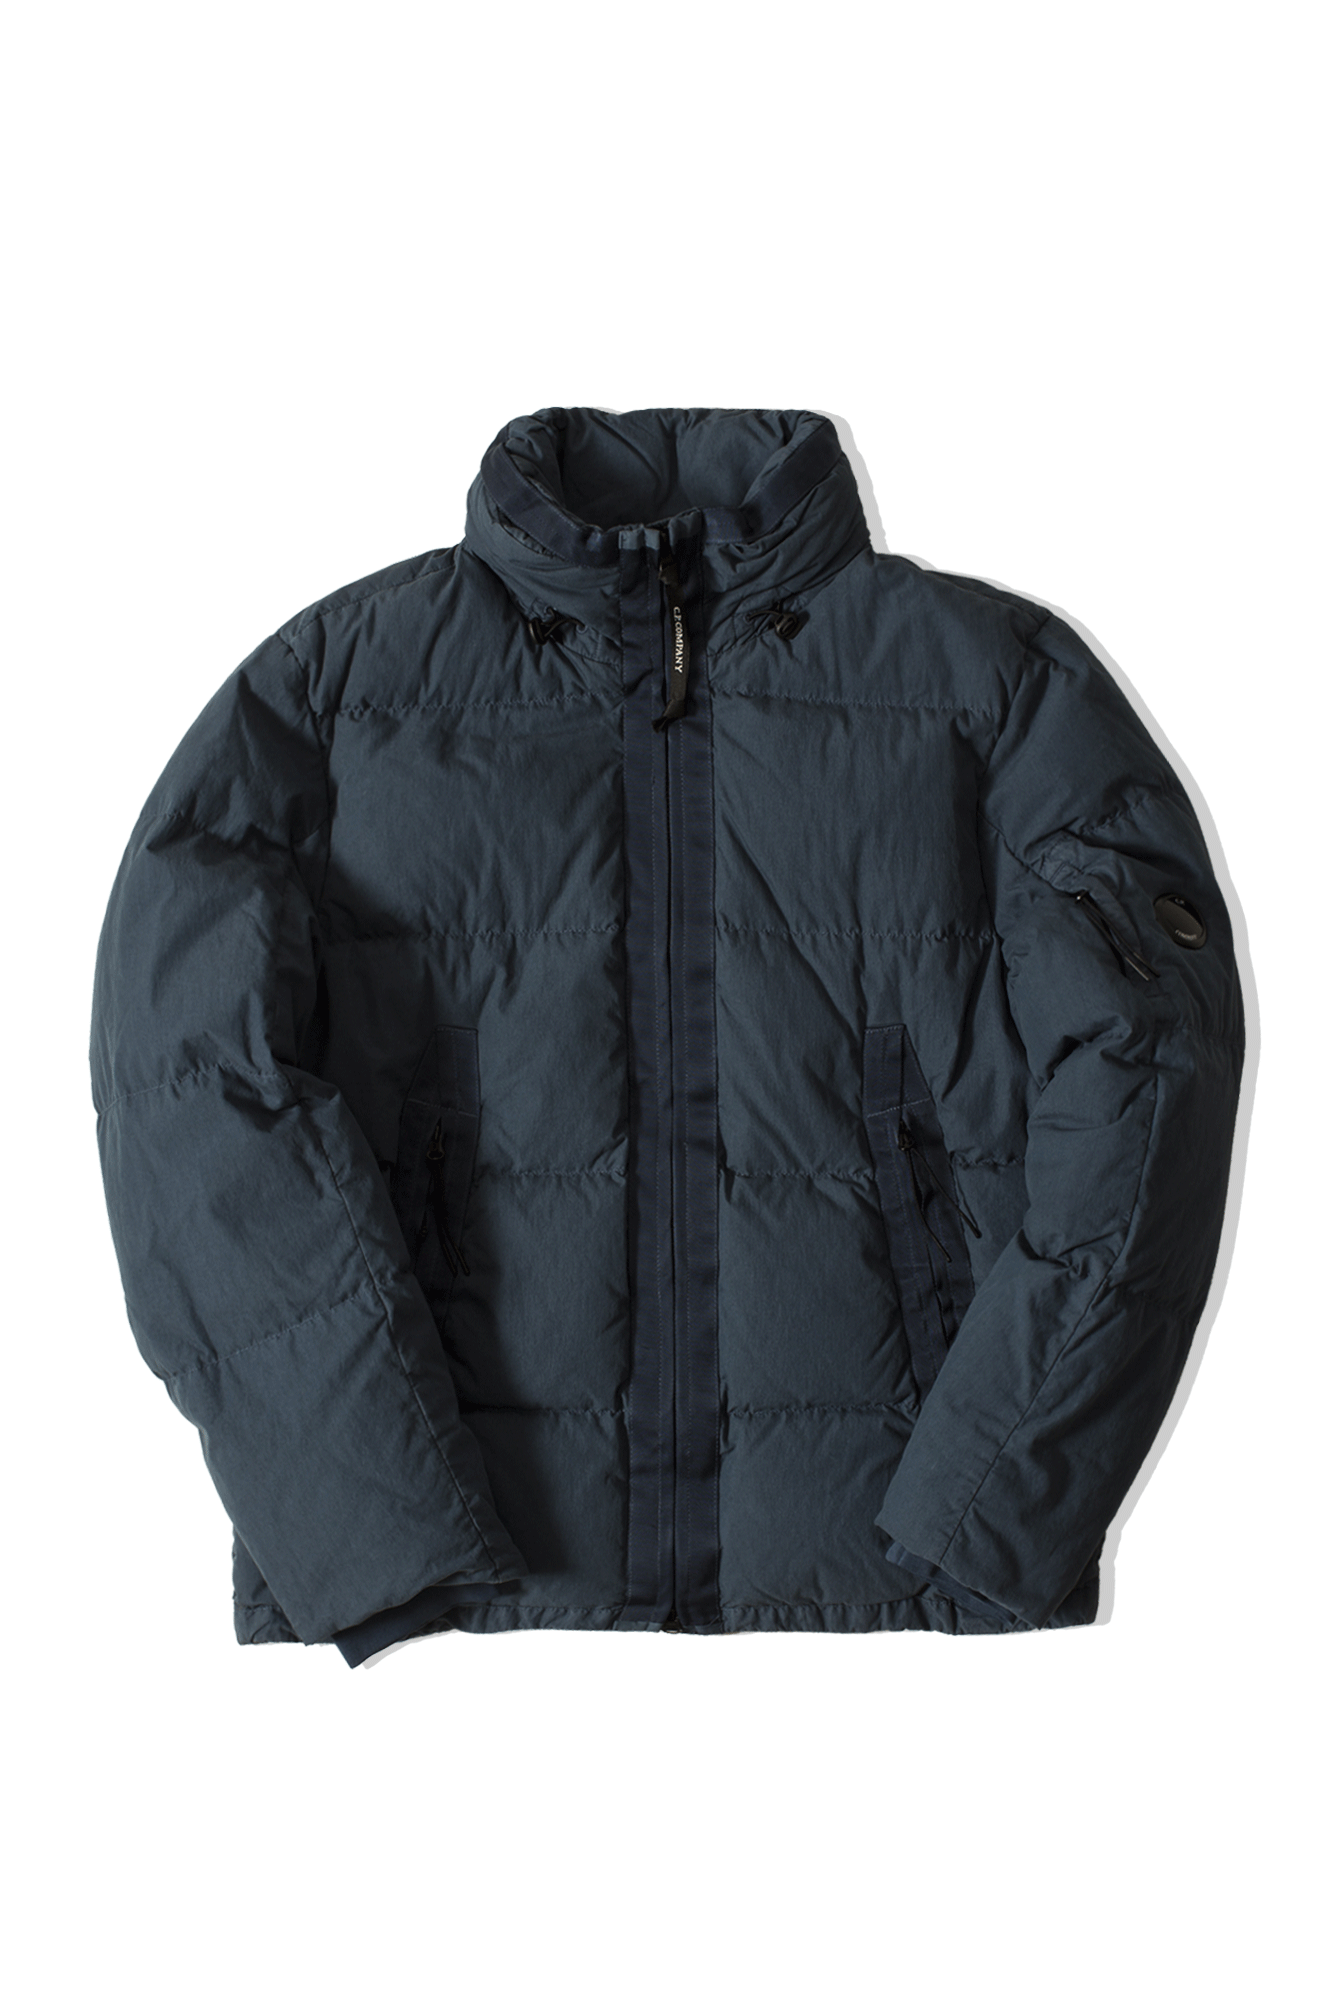 MEDIUM JACKET Blue